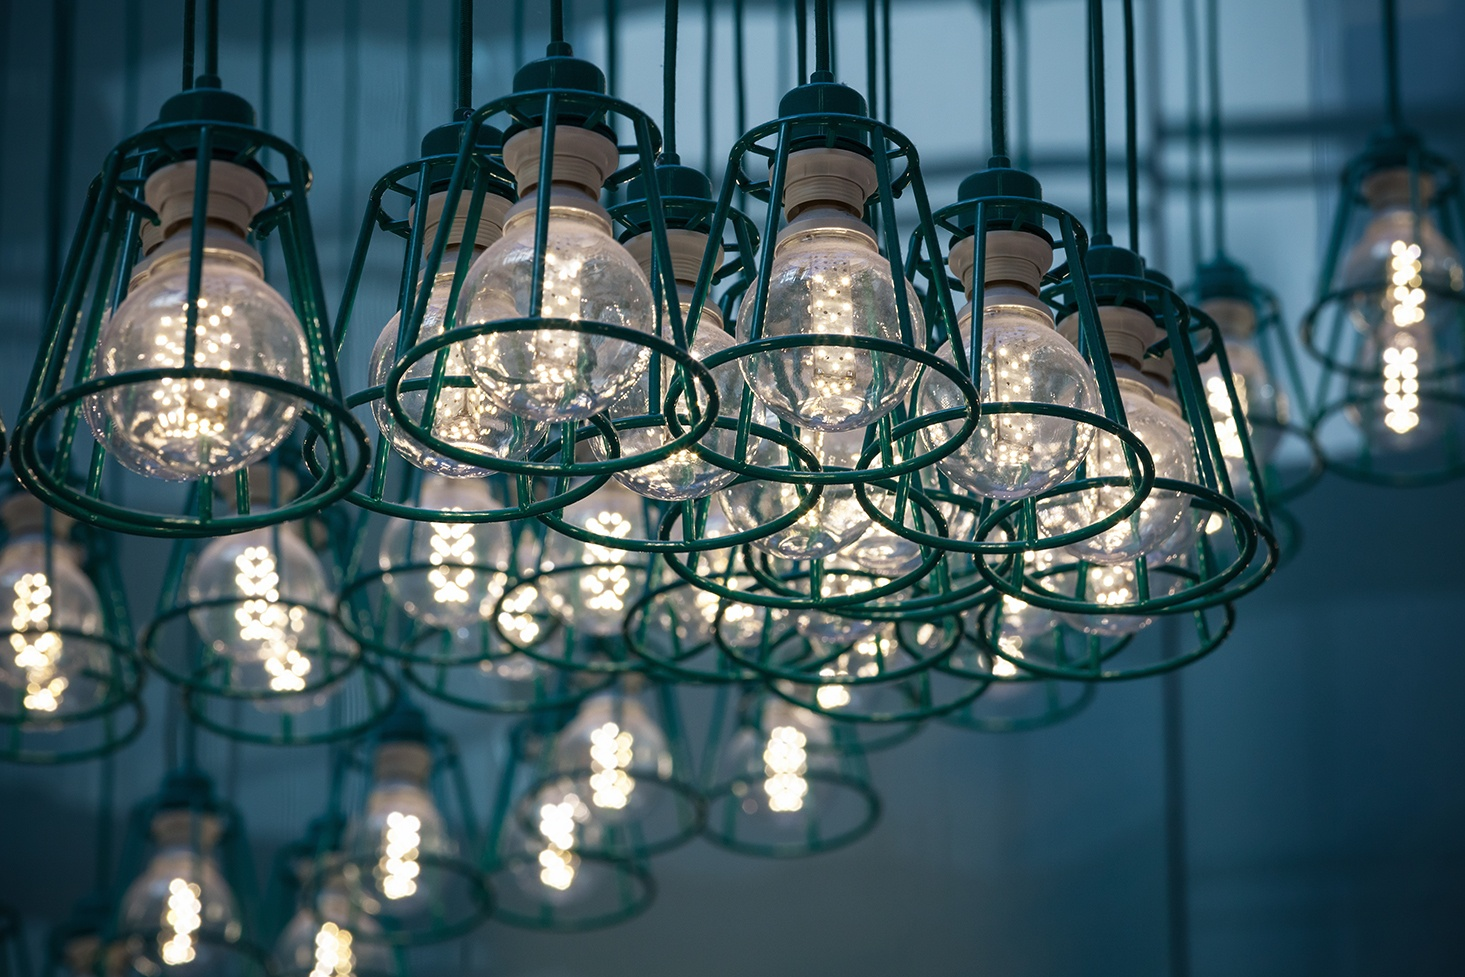 Plug and play led bulb vs led fixture pros and cons to consider led fixture pros and cons to consider for your next project arubaitofo Choice Image